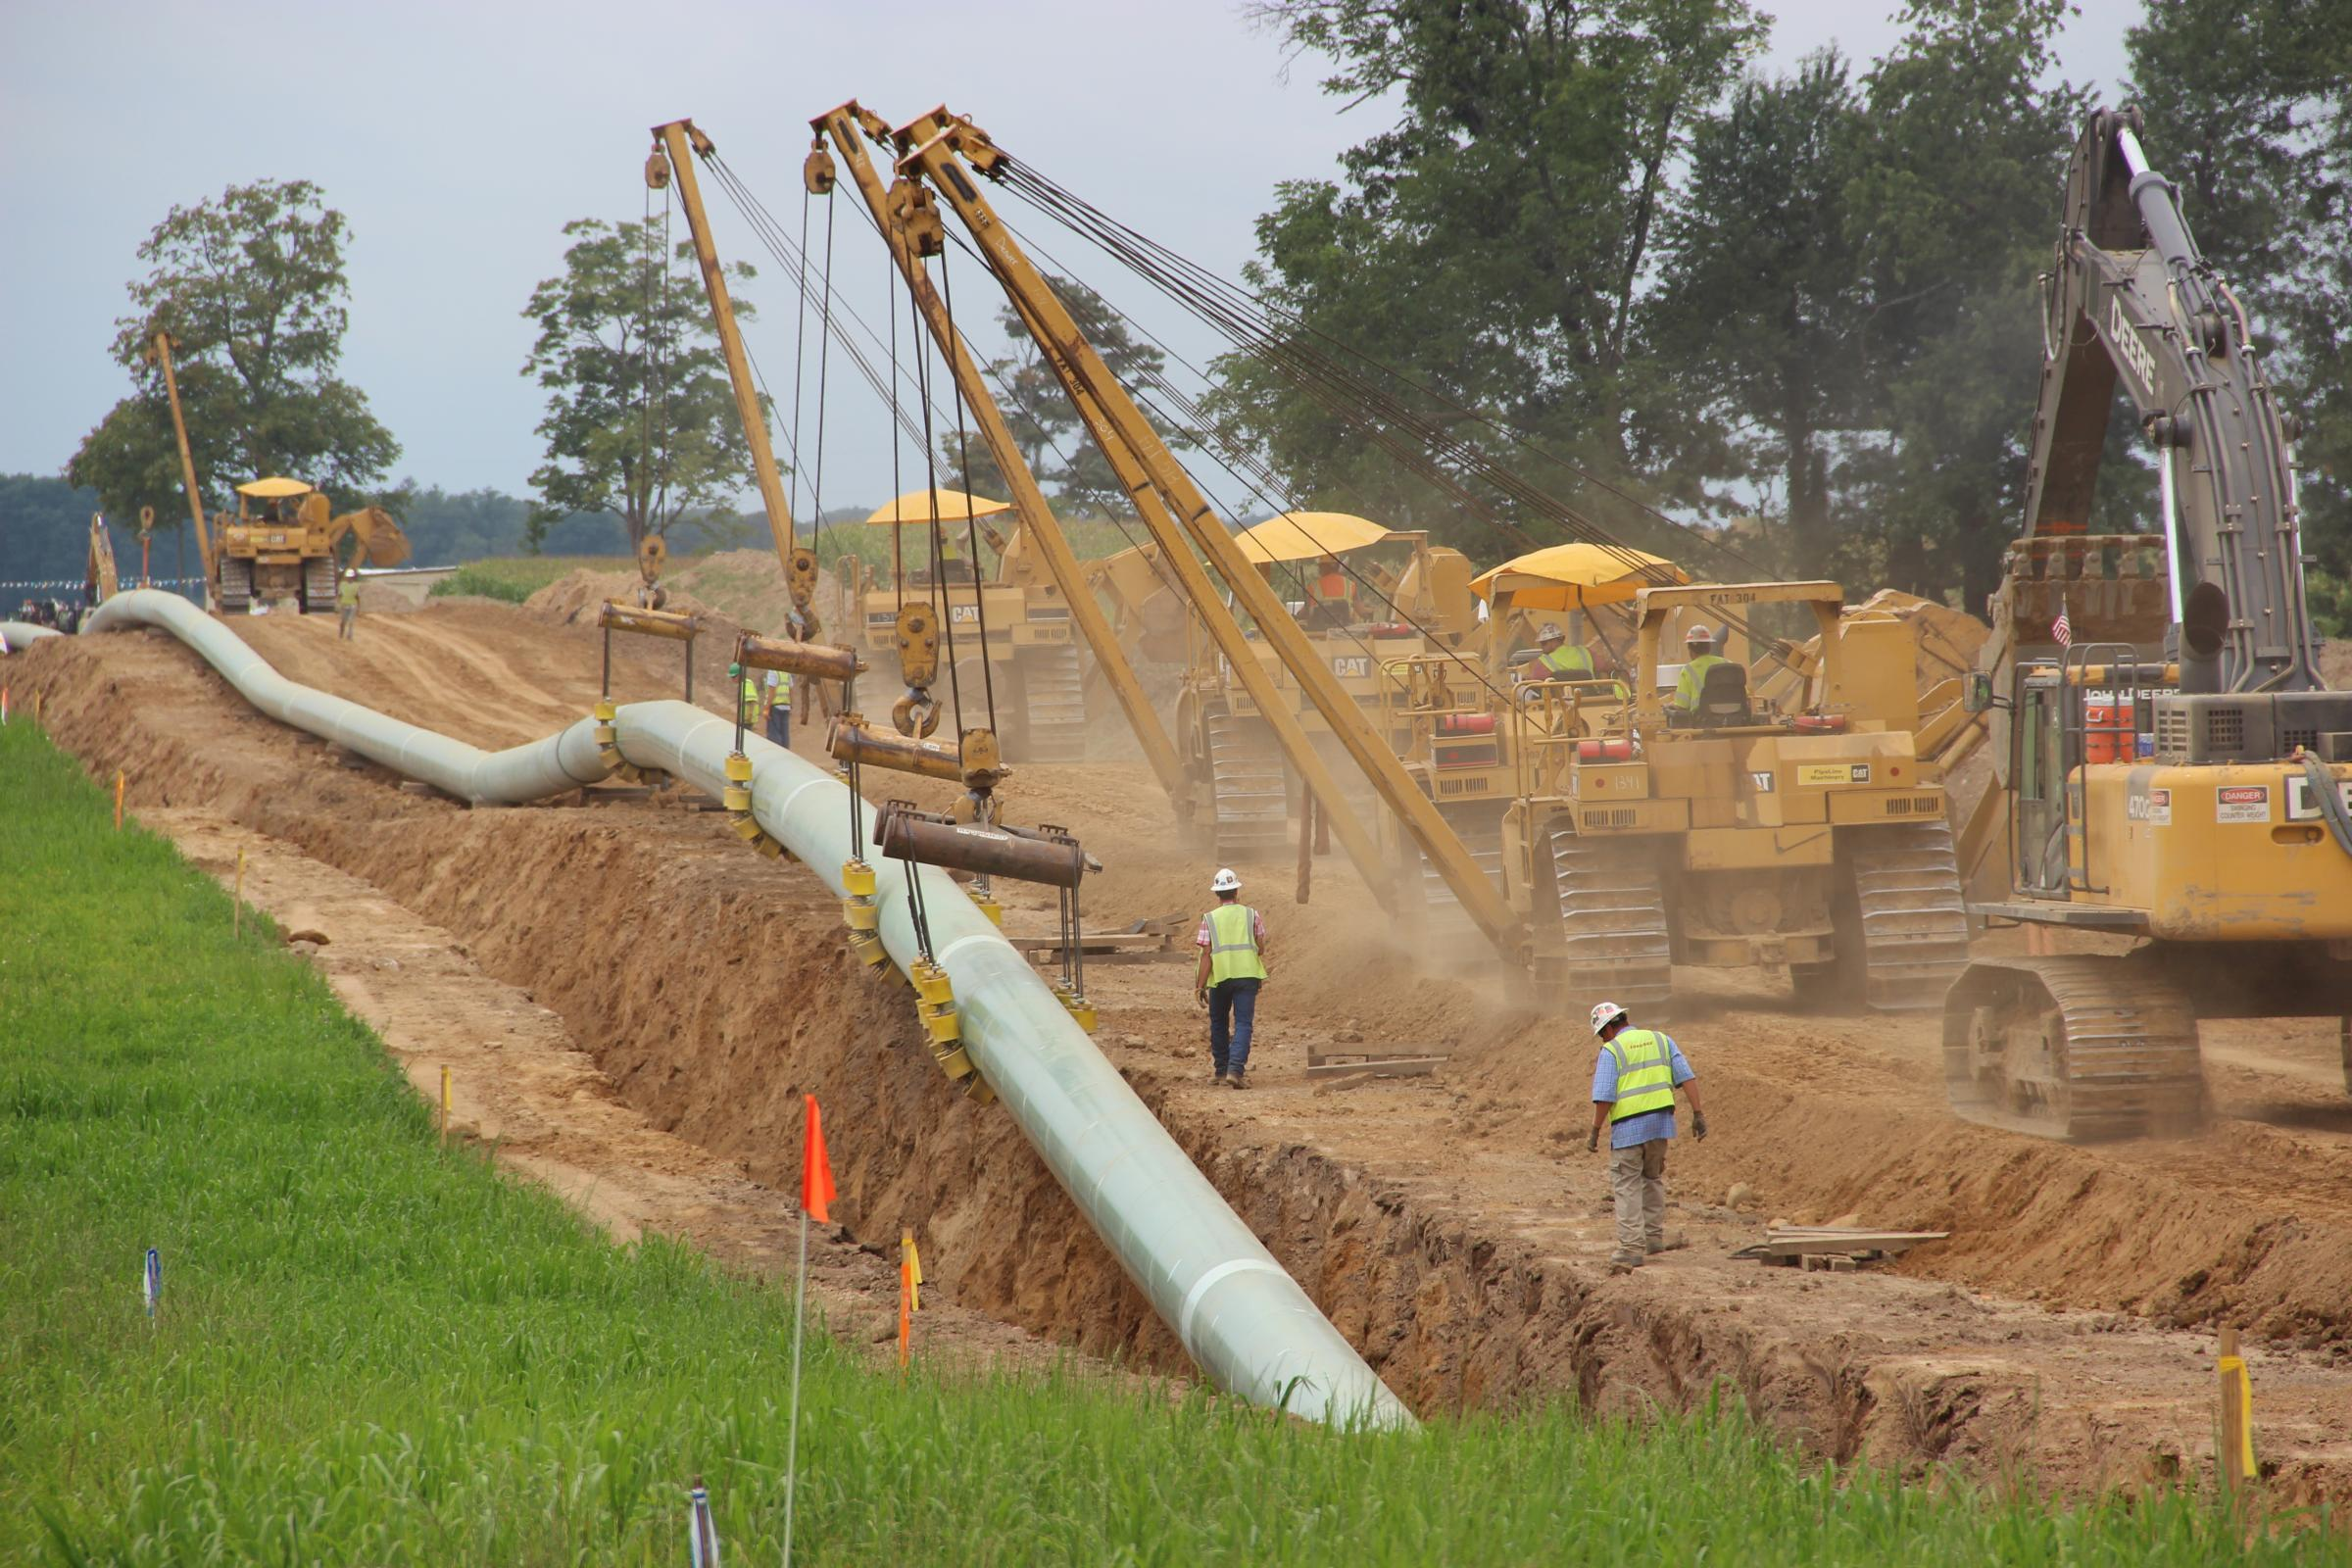 Miles of new oil pipeline being installed across